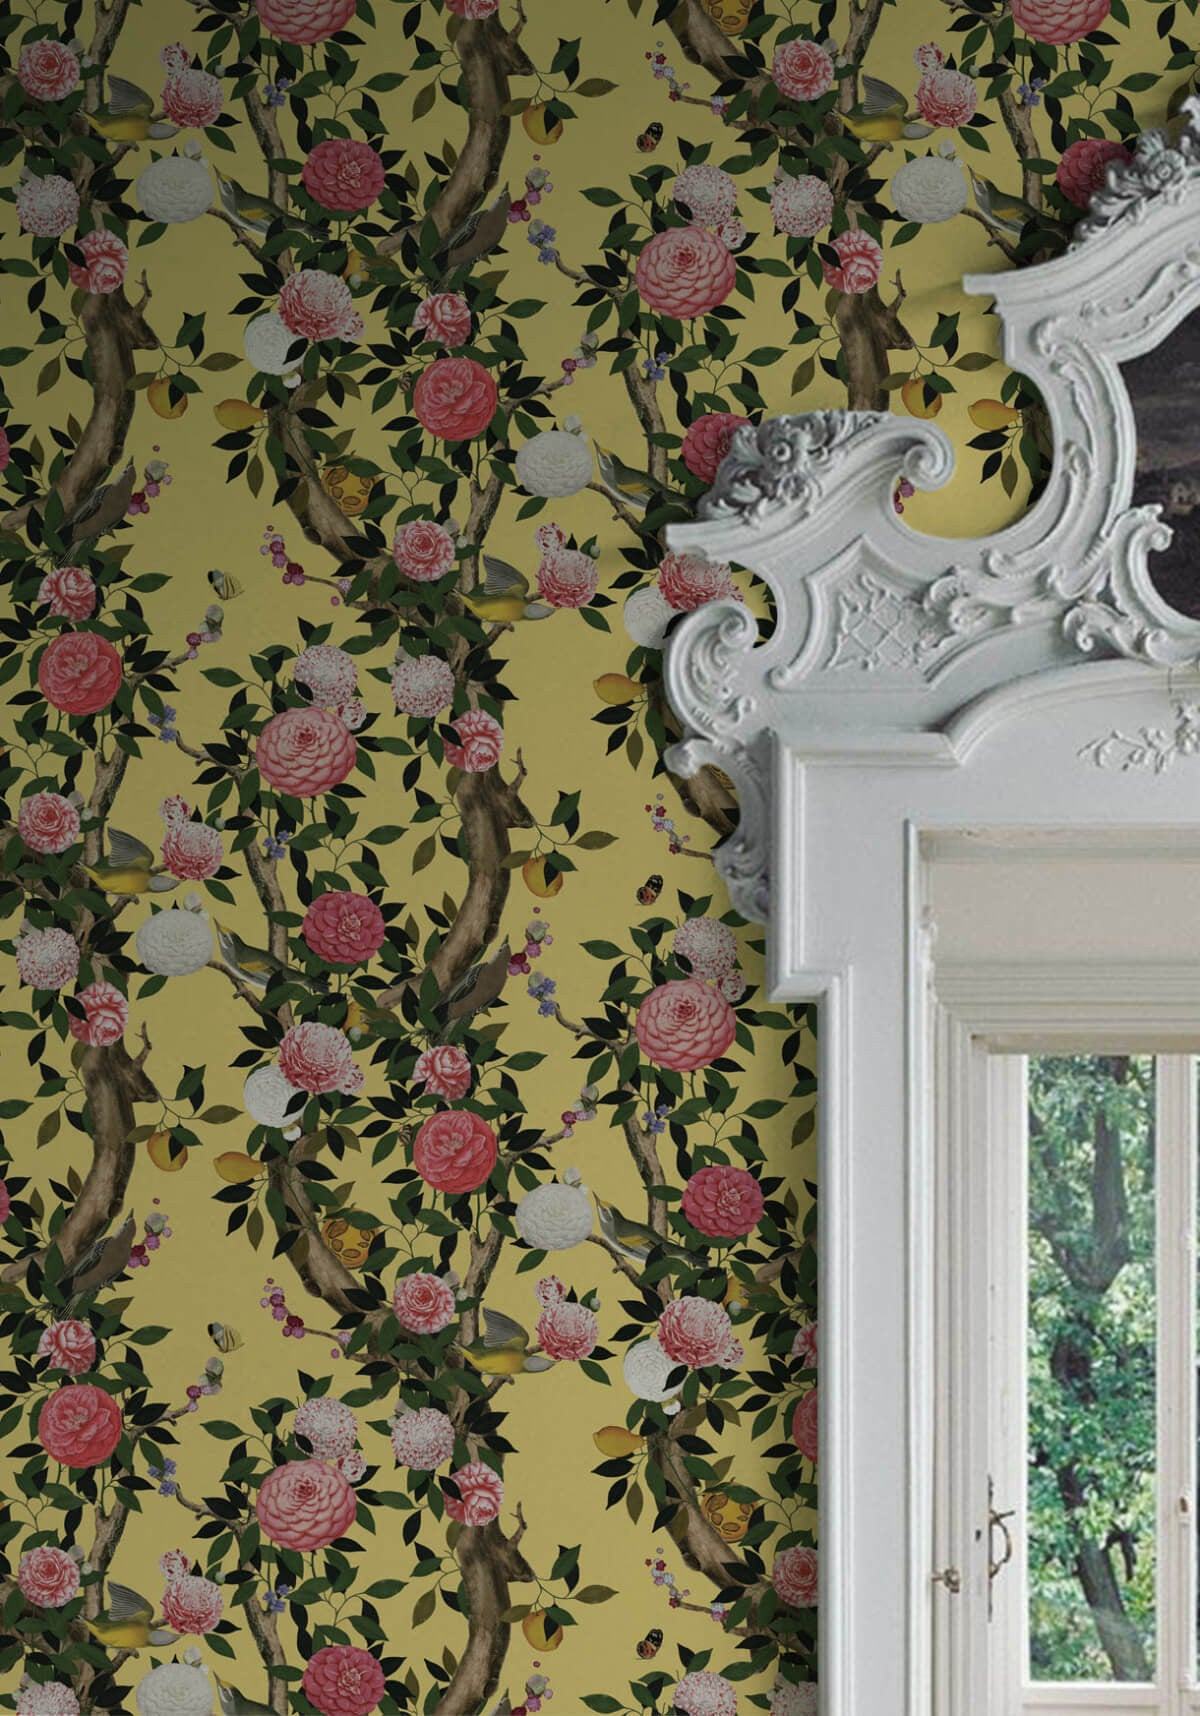 Garden Bloom Wallpaper in Golden Pear from the Kingdom Home ...